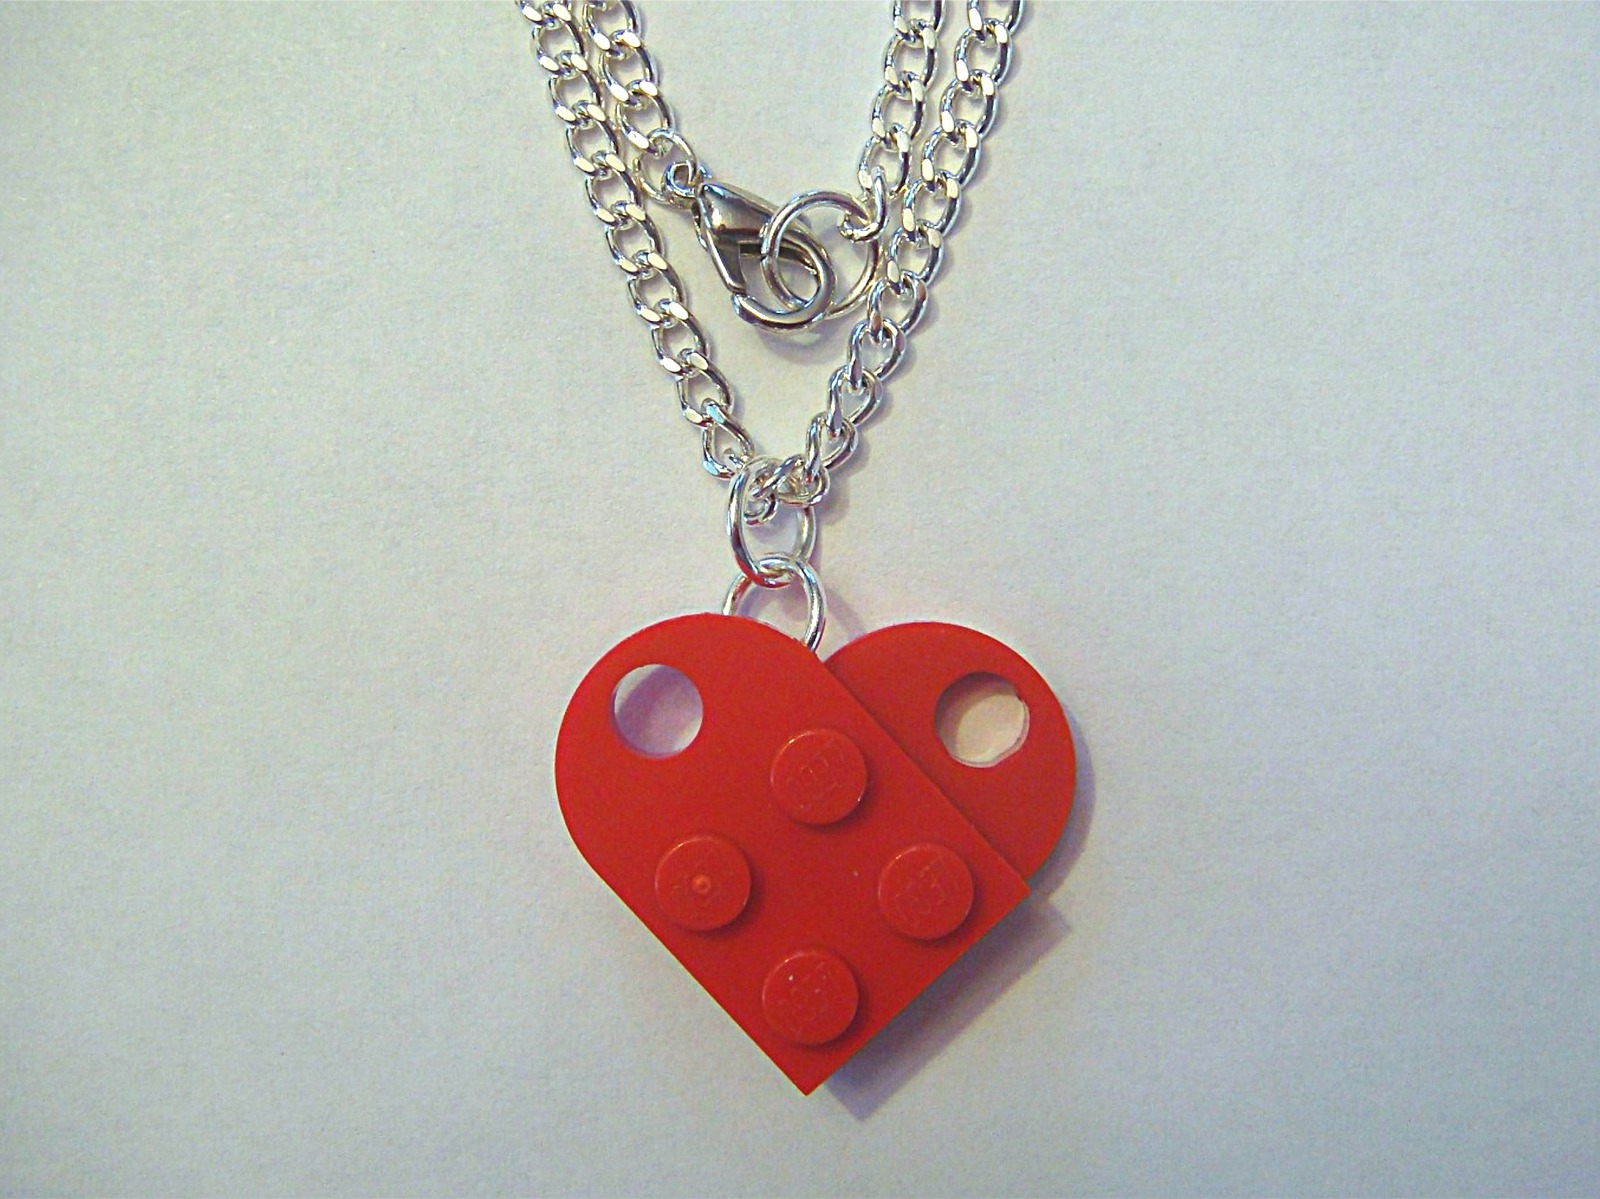 Heart necklace red1